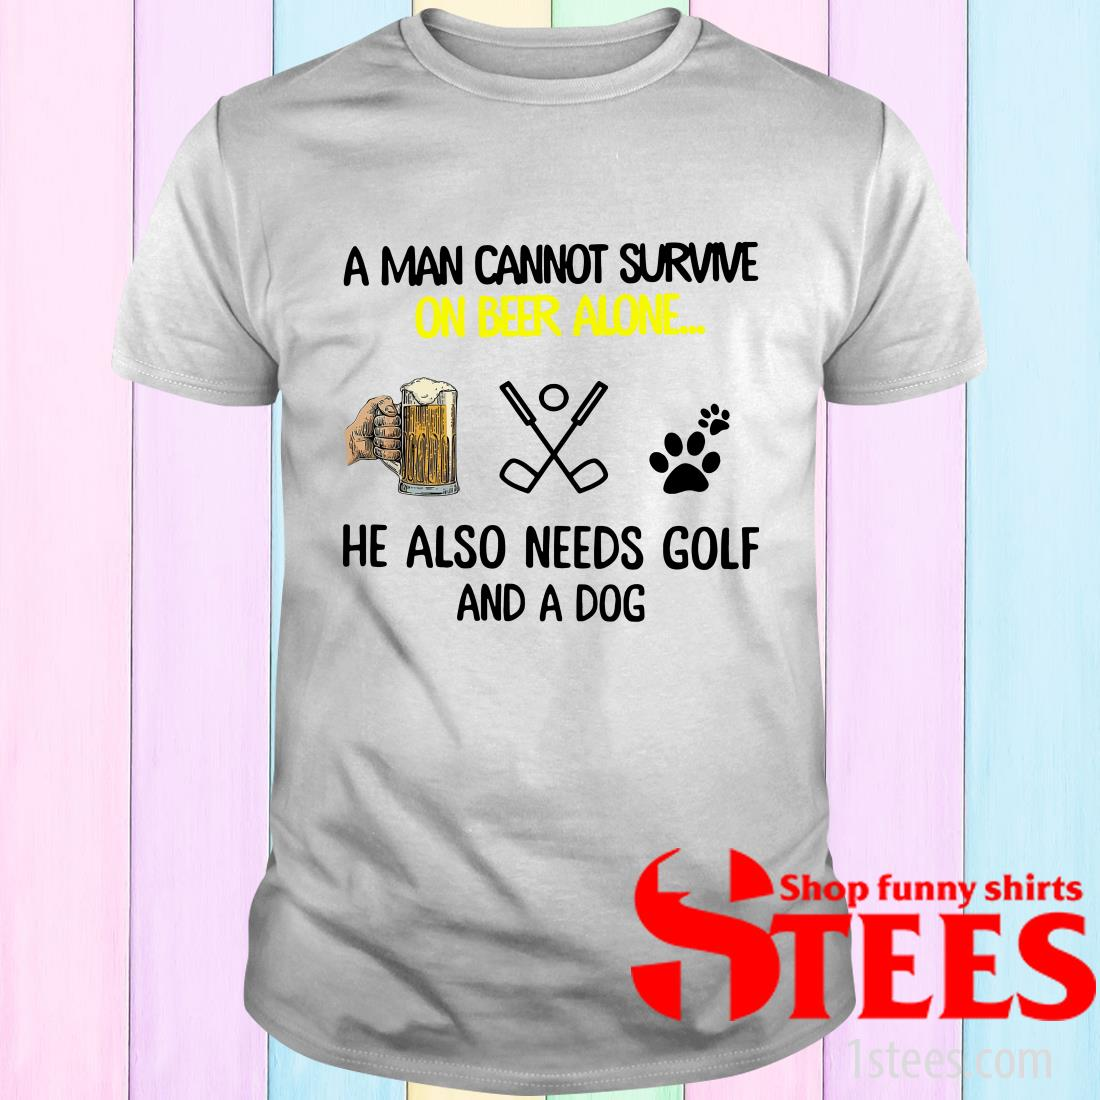 A Man Cannot Survive On Beer Alone He Also Needs Golf And A Dog T-Shirt